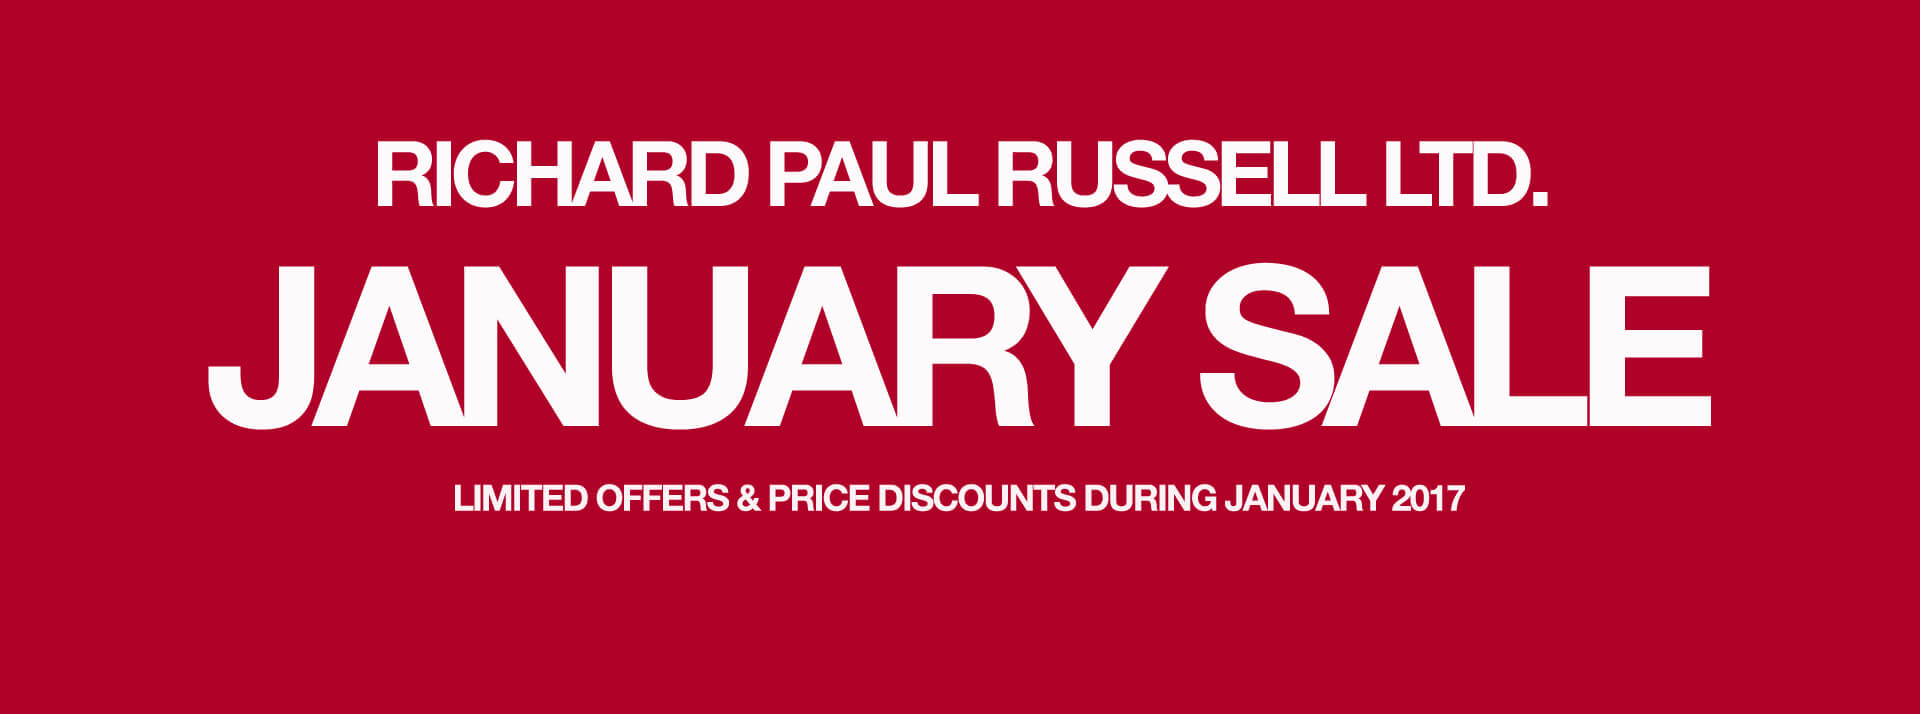 January 2017 Offers »